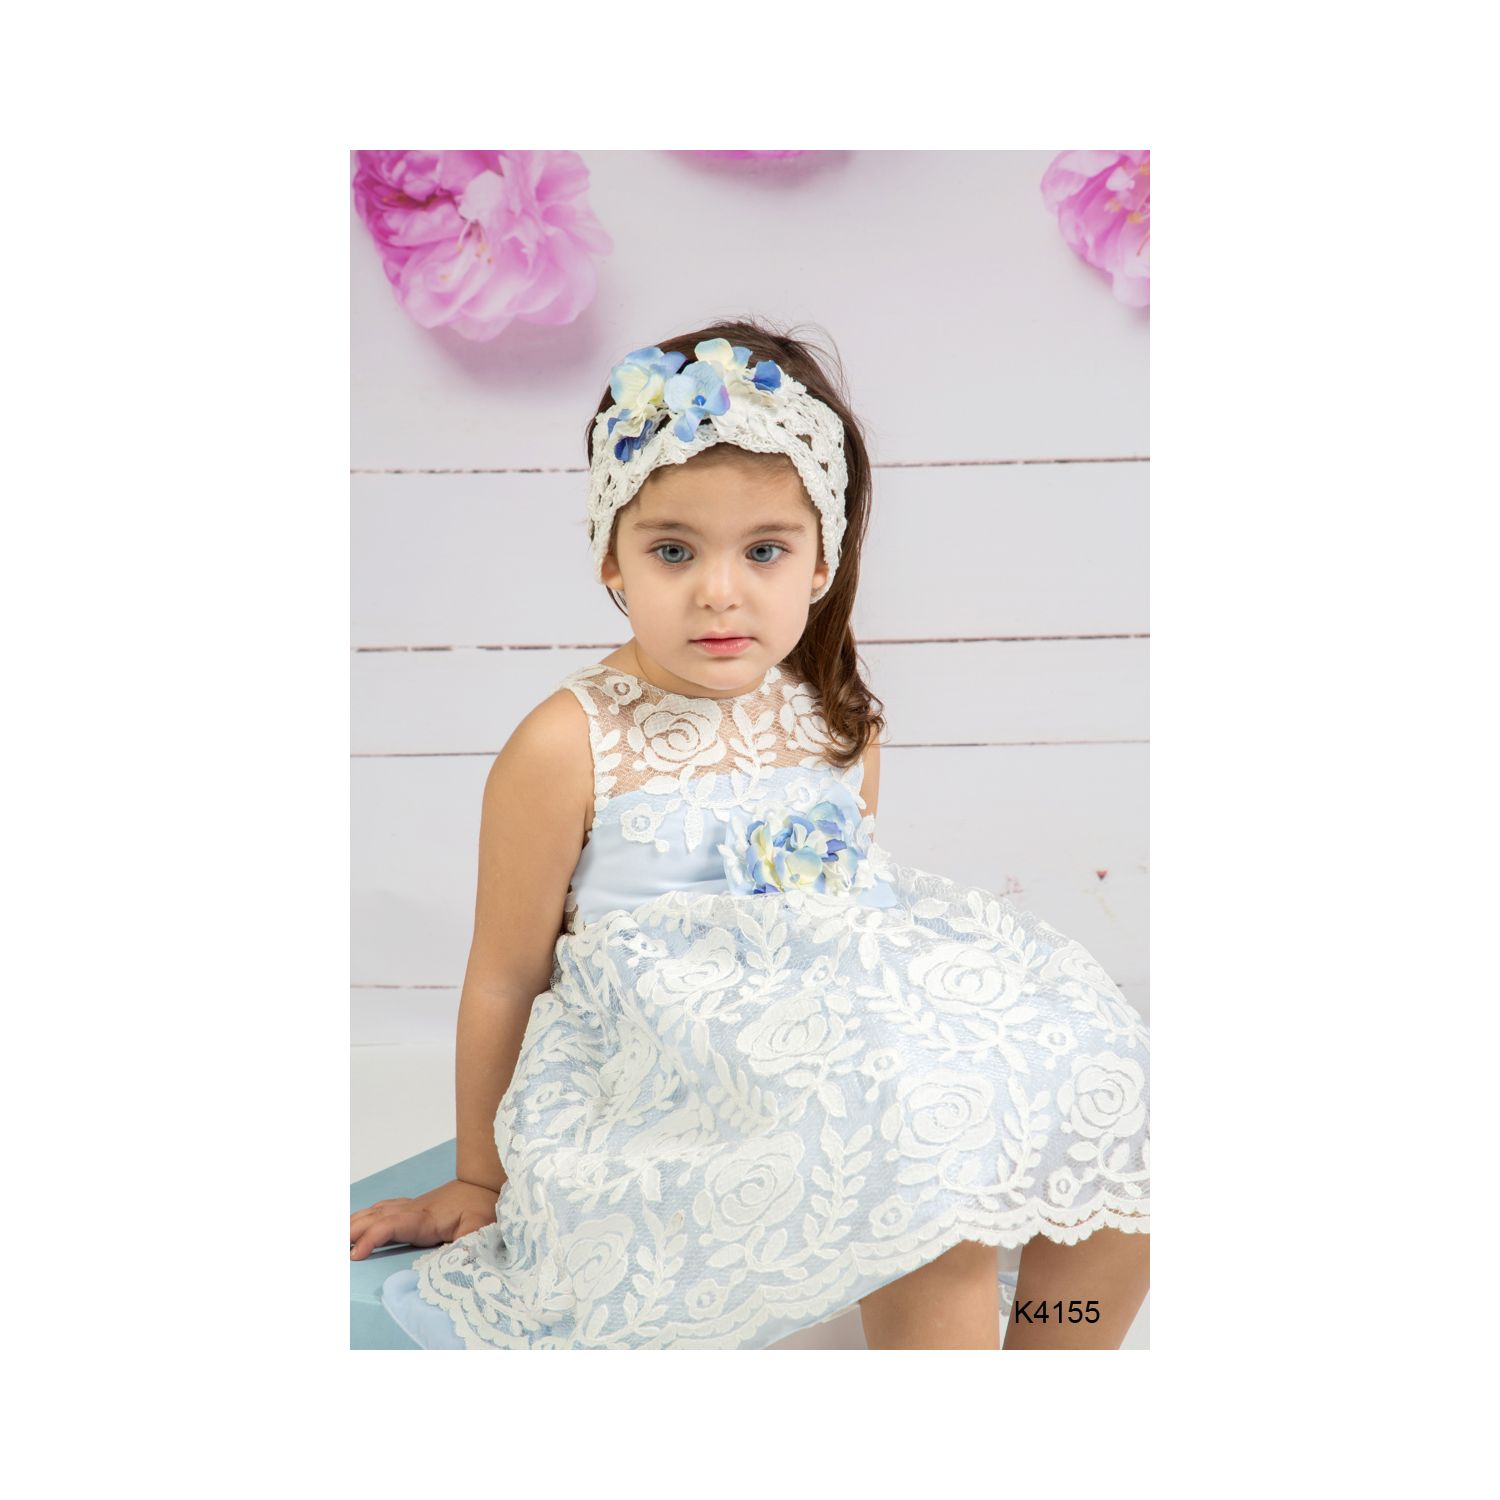 Lace baptismal clothes for girls K4155